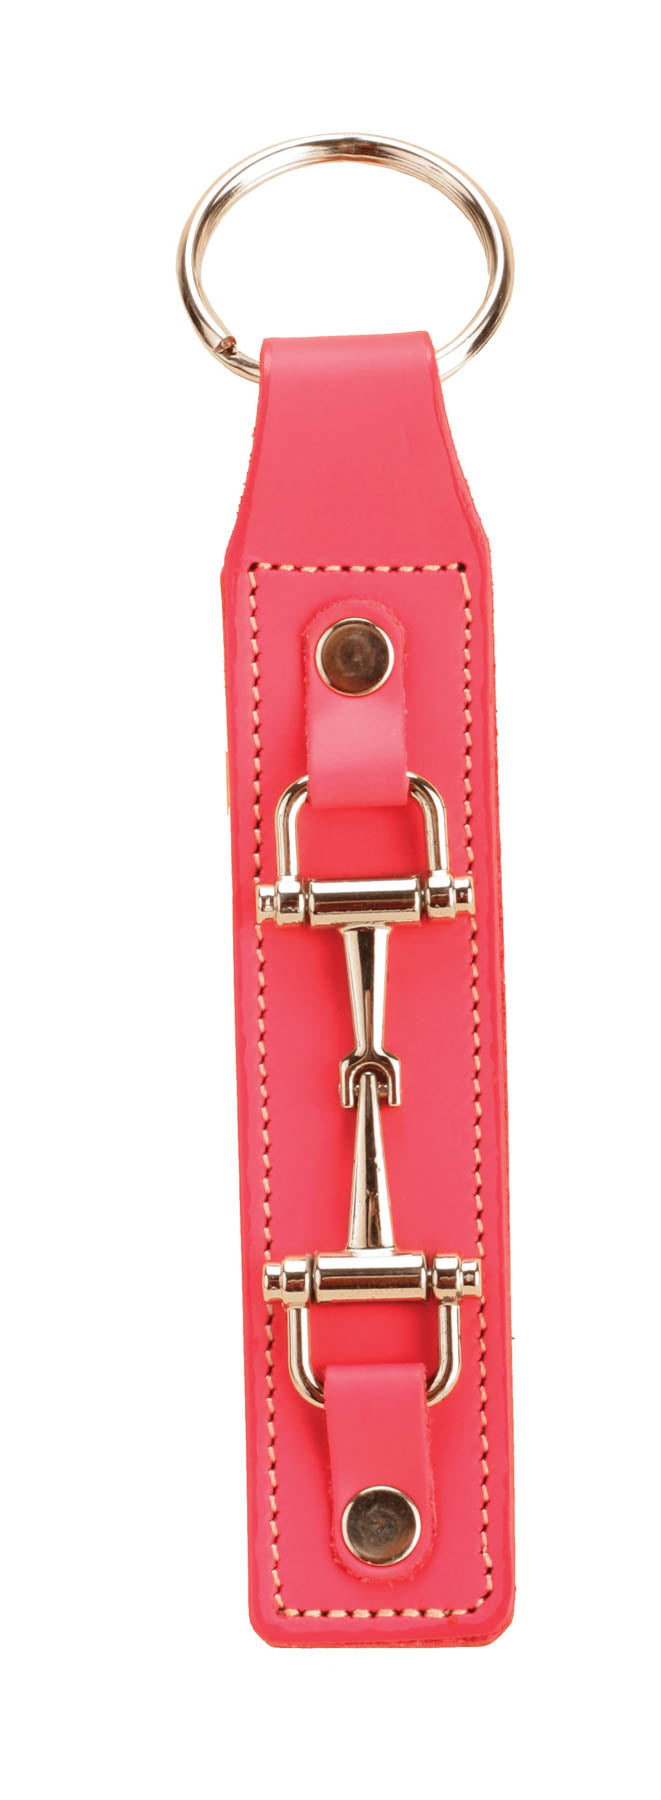 Tory Leather Pink Snaffle Key Fob